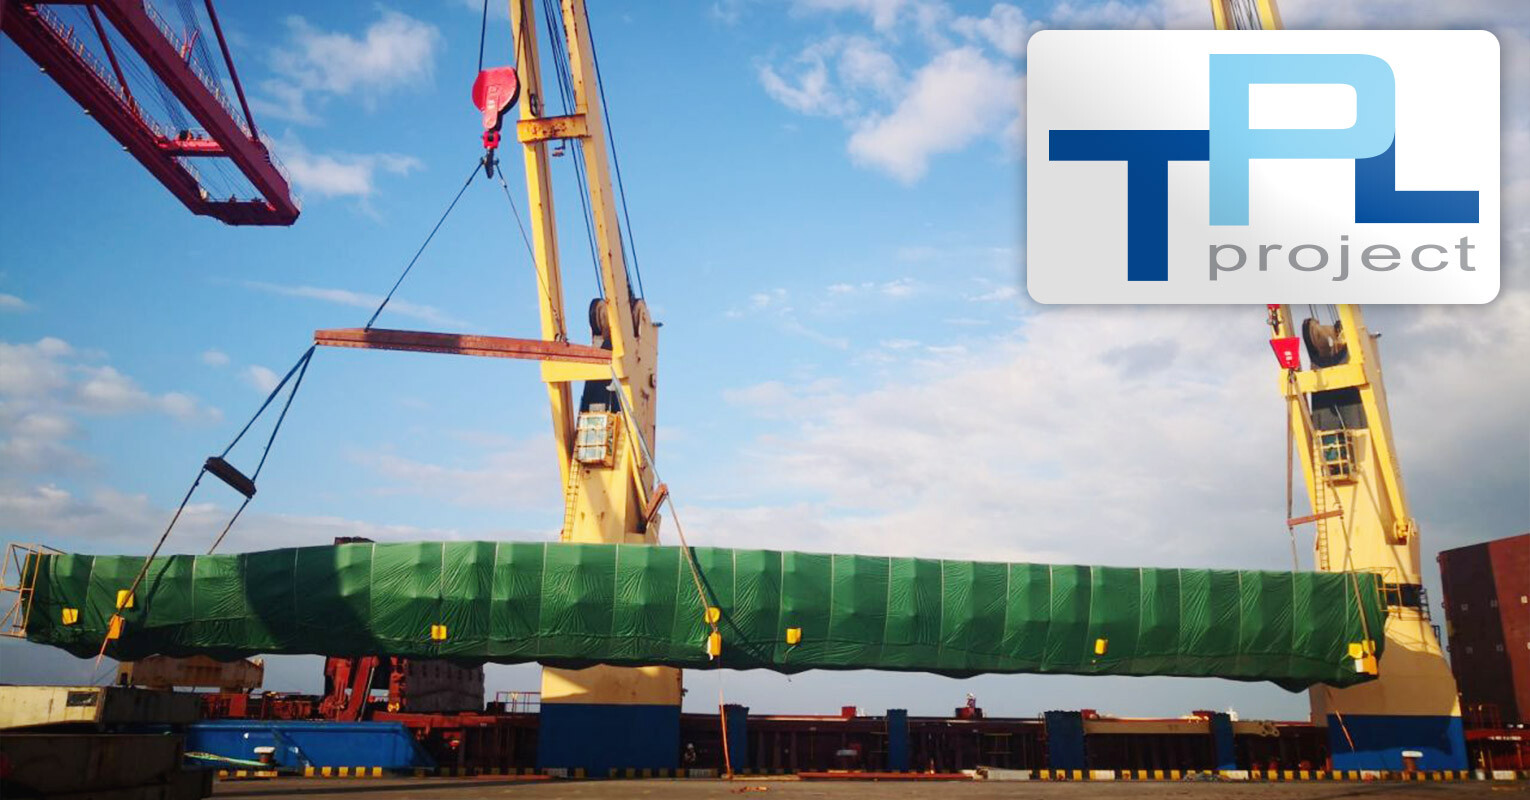 TPL Project Shipped 23 pcs of Blade Moulds to Mexico Under FAS Terms from Taicang Port, China